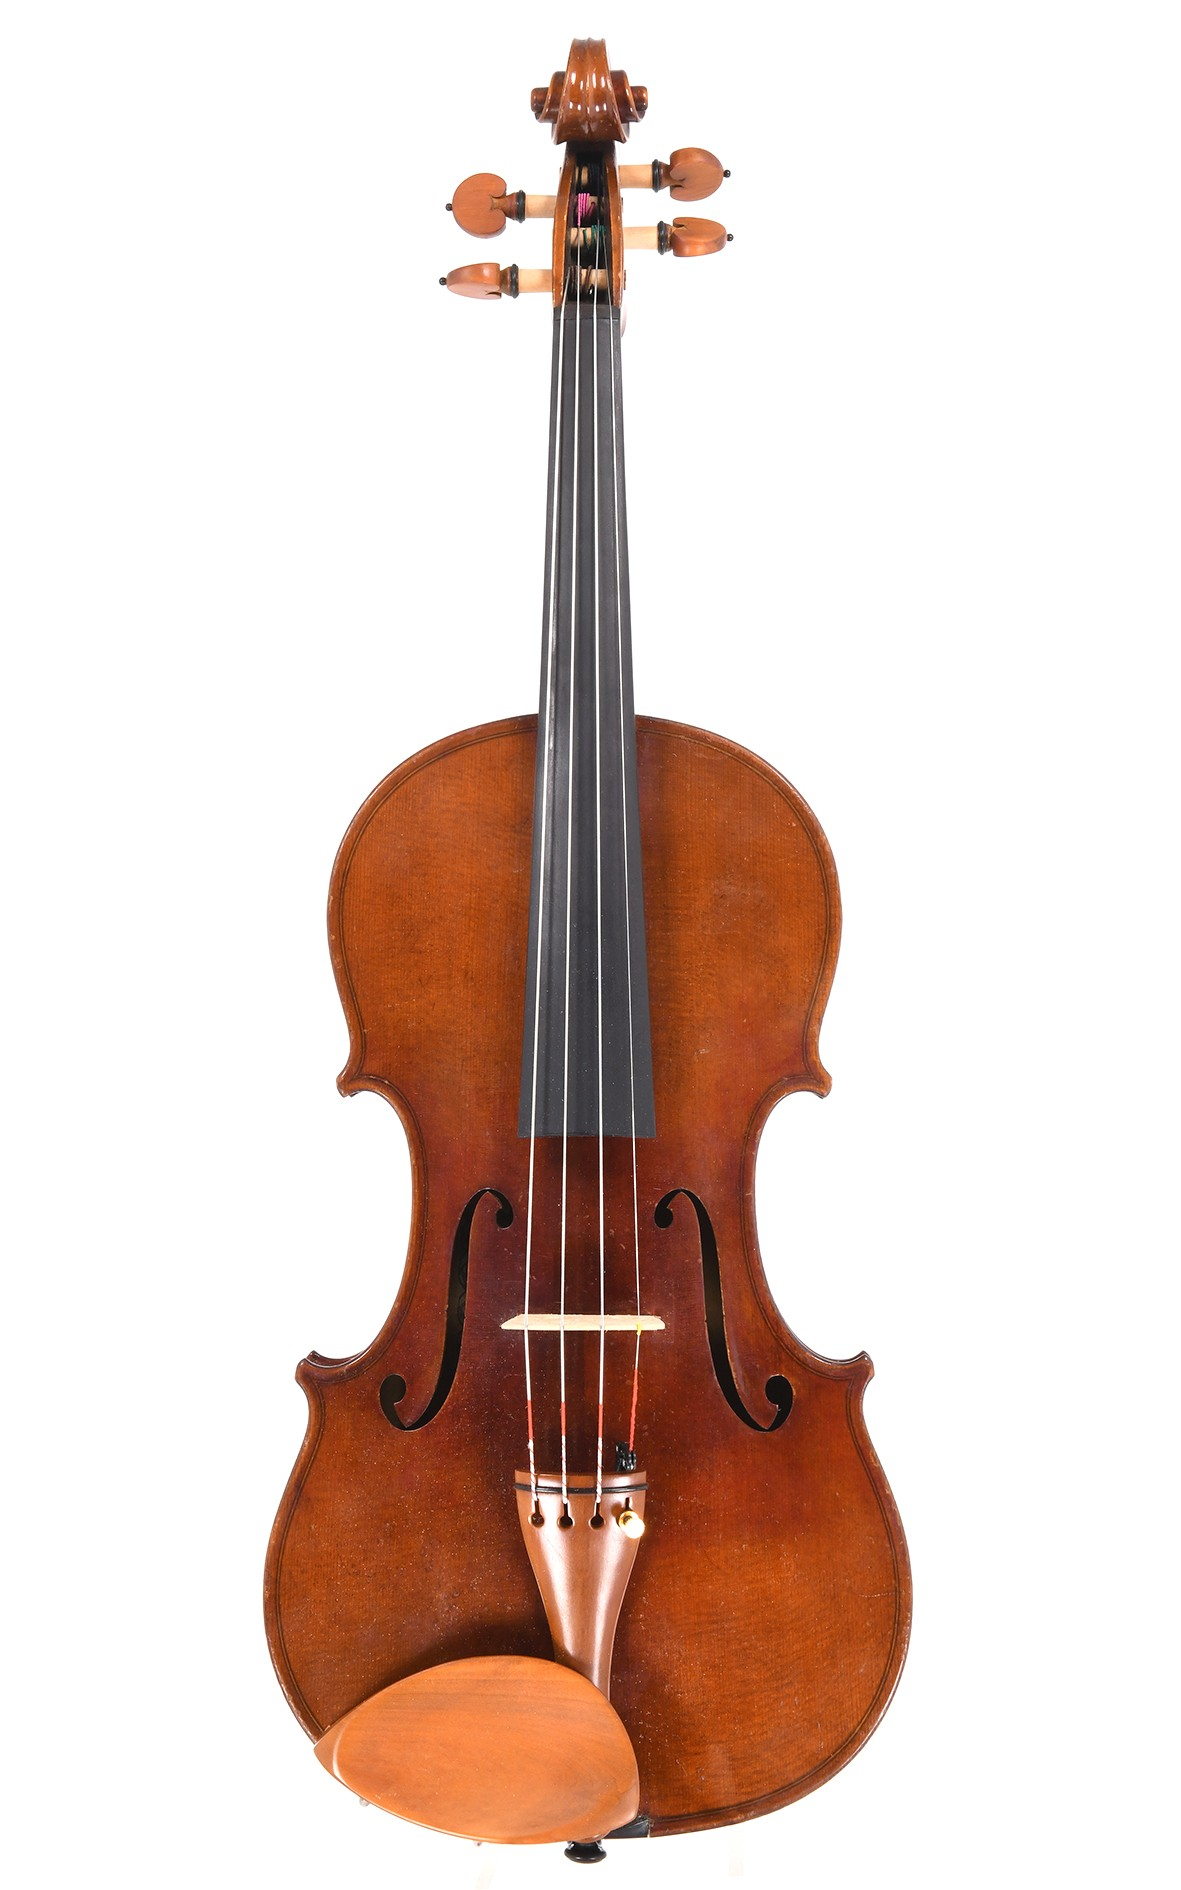 French violin of the brand Apparut in Mirecourt